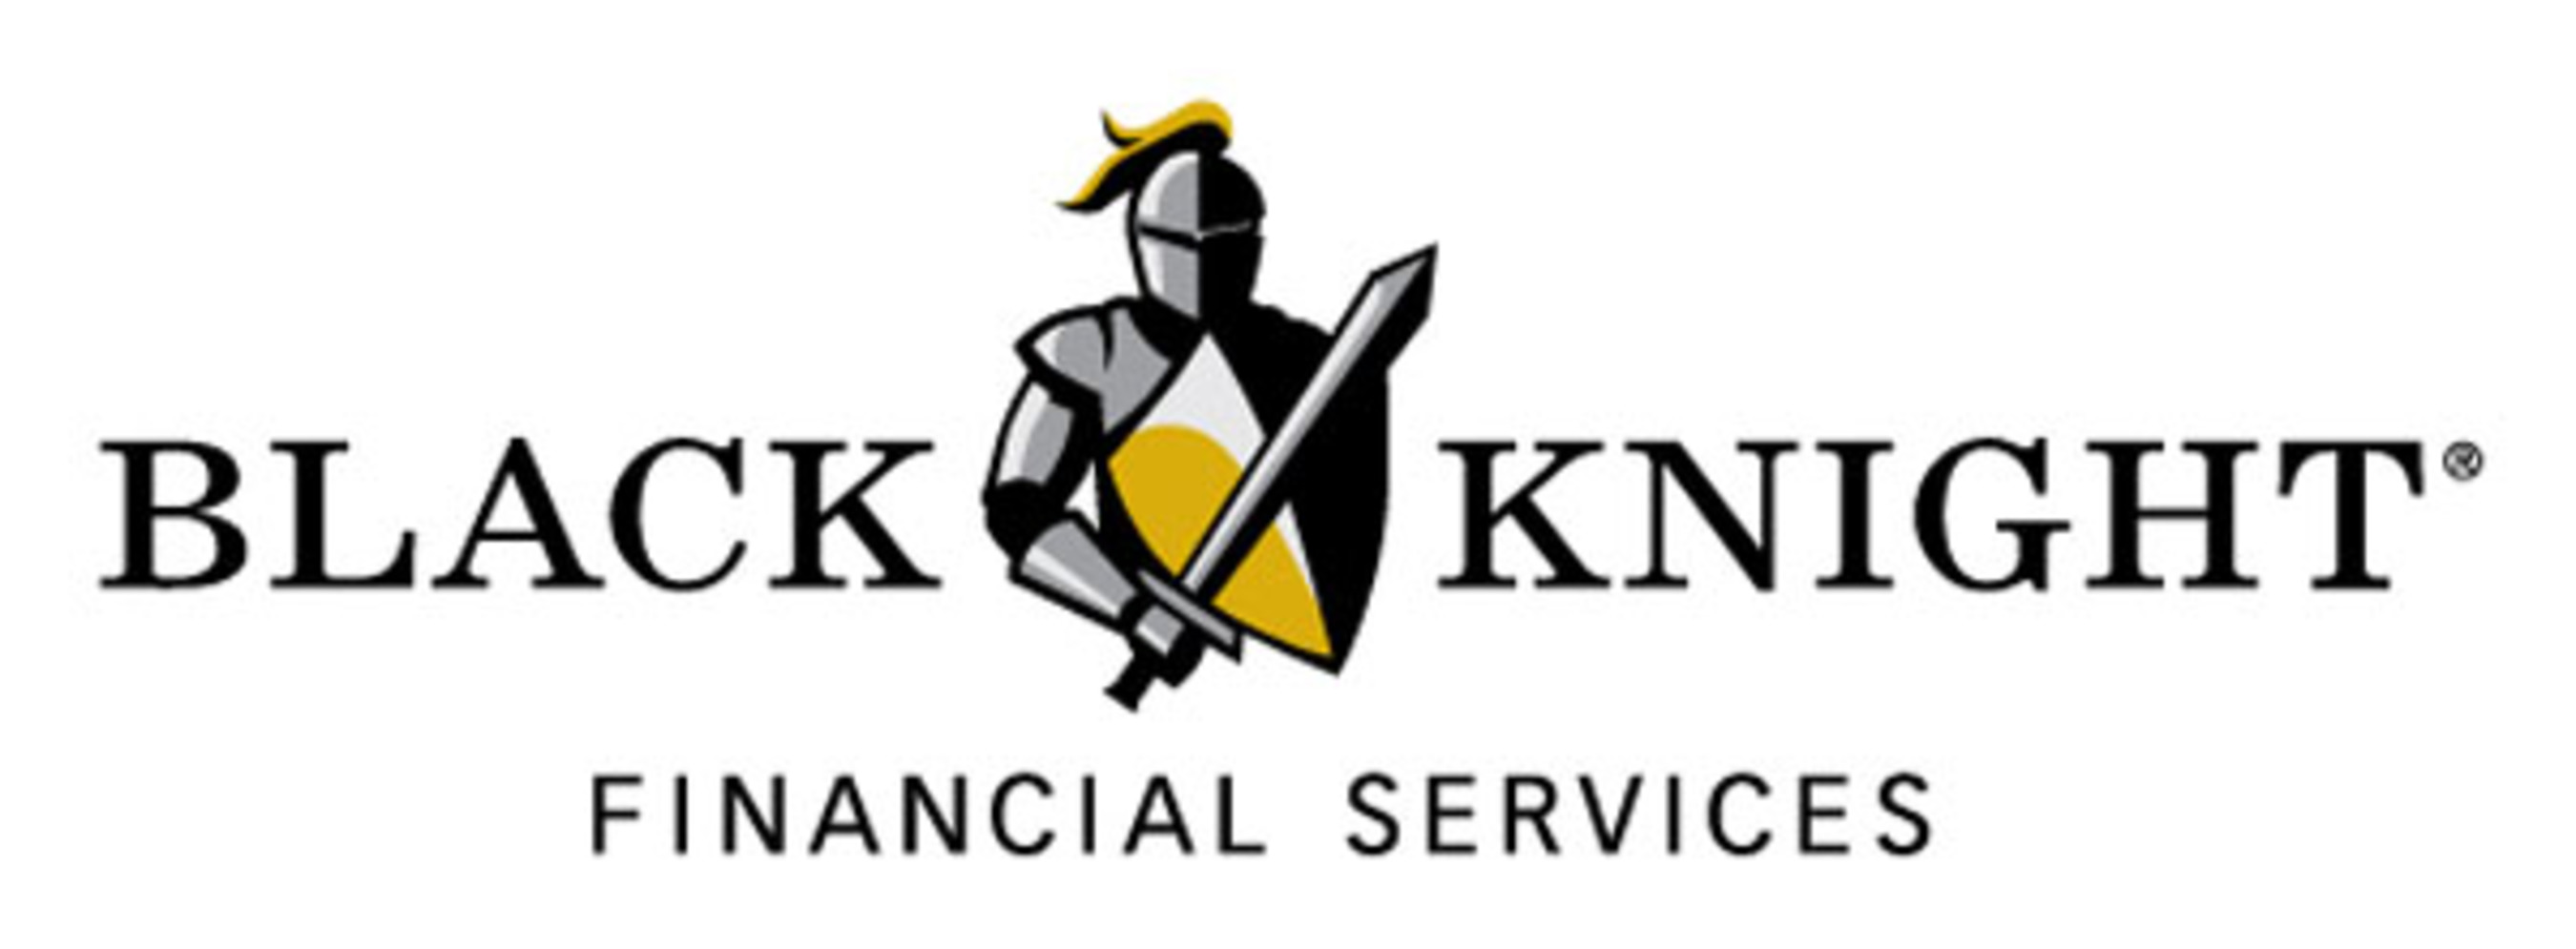 Black Knight Financial Services' LoanSphere Empower and